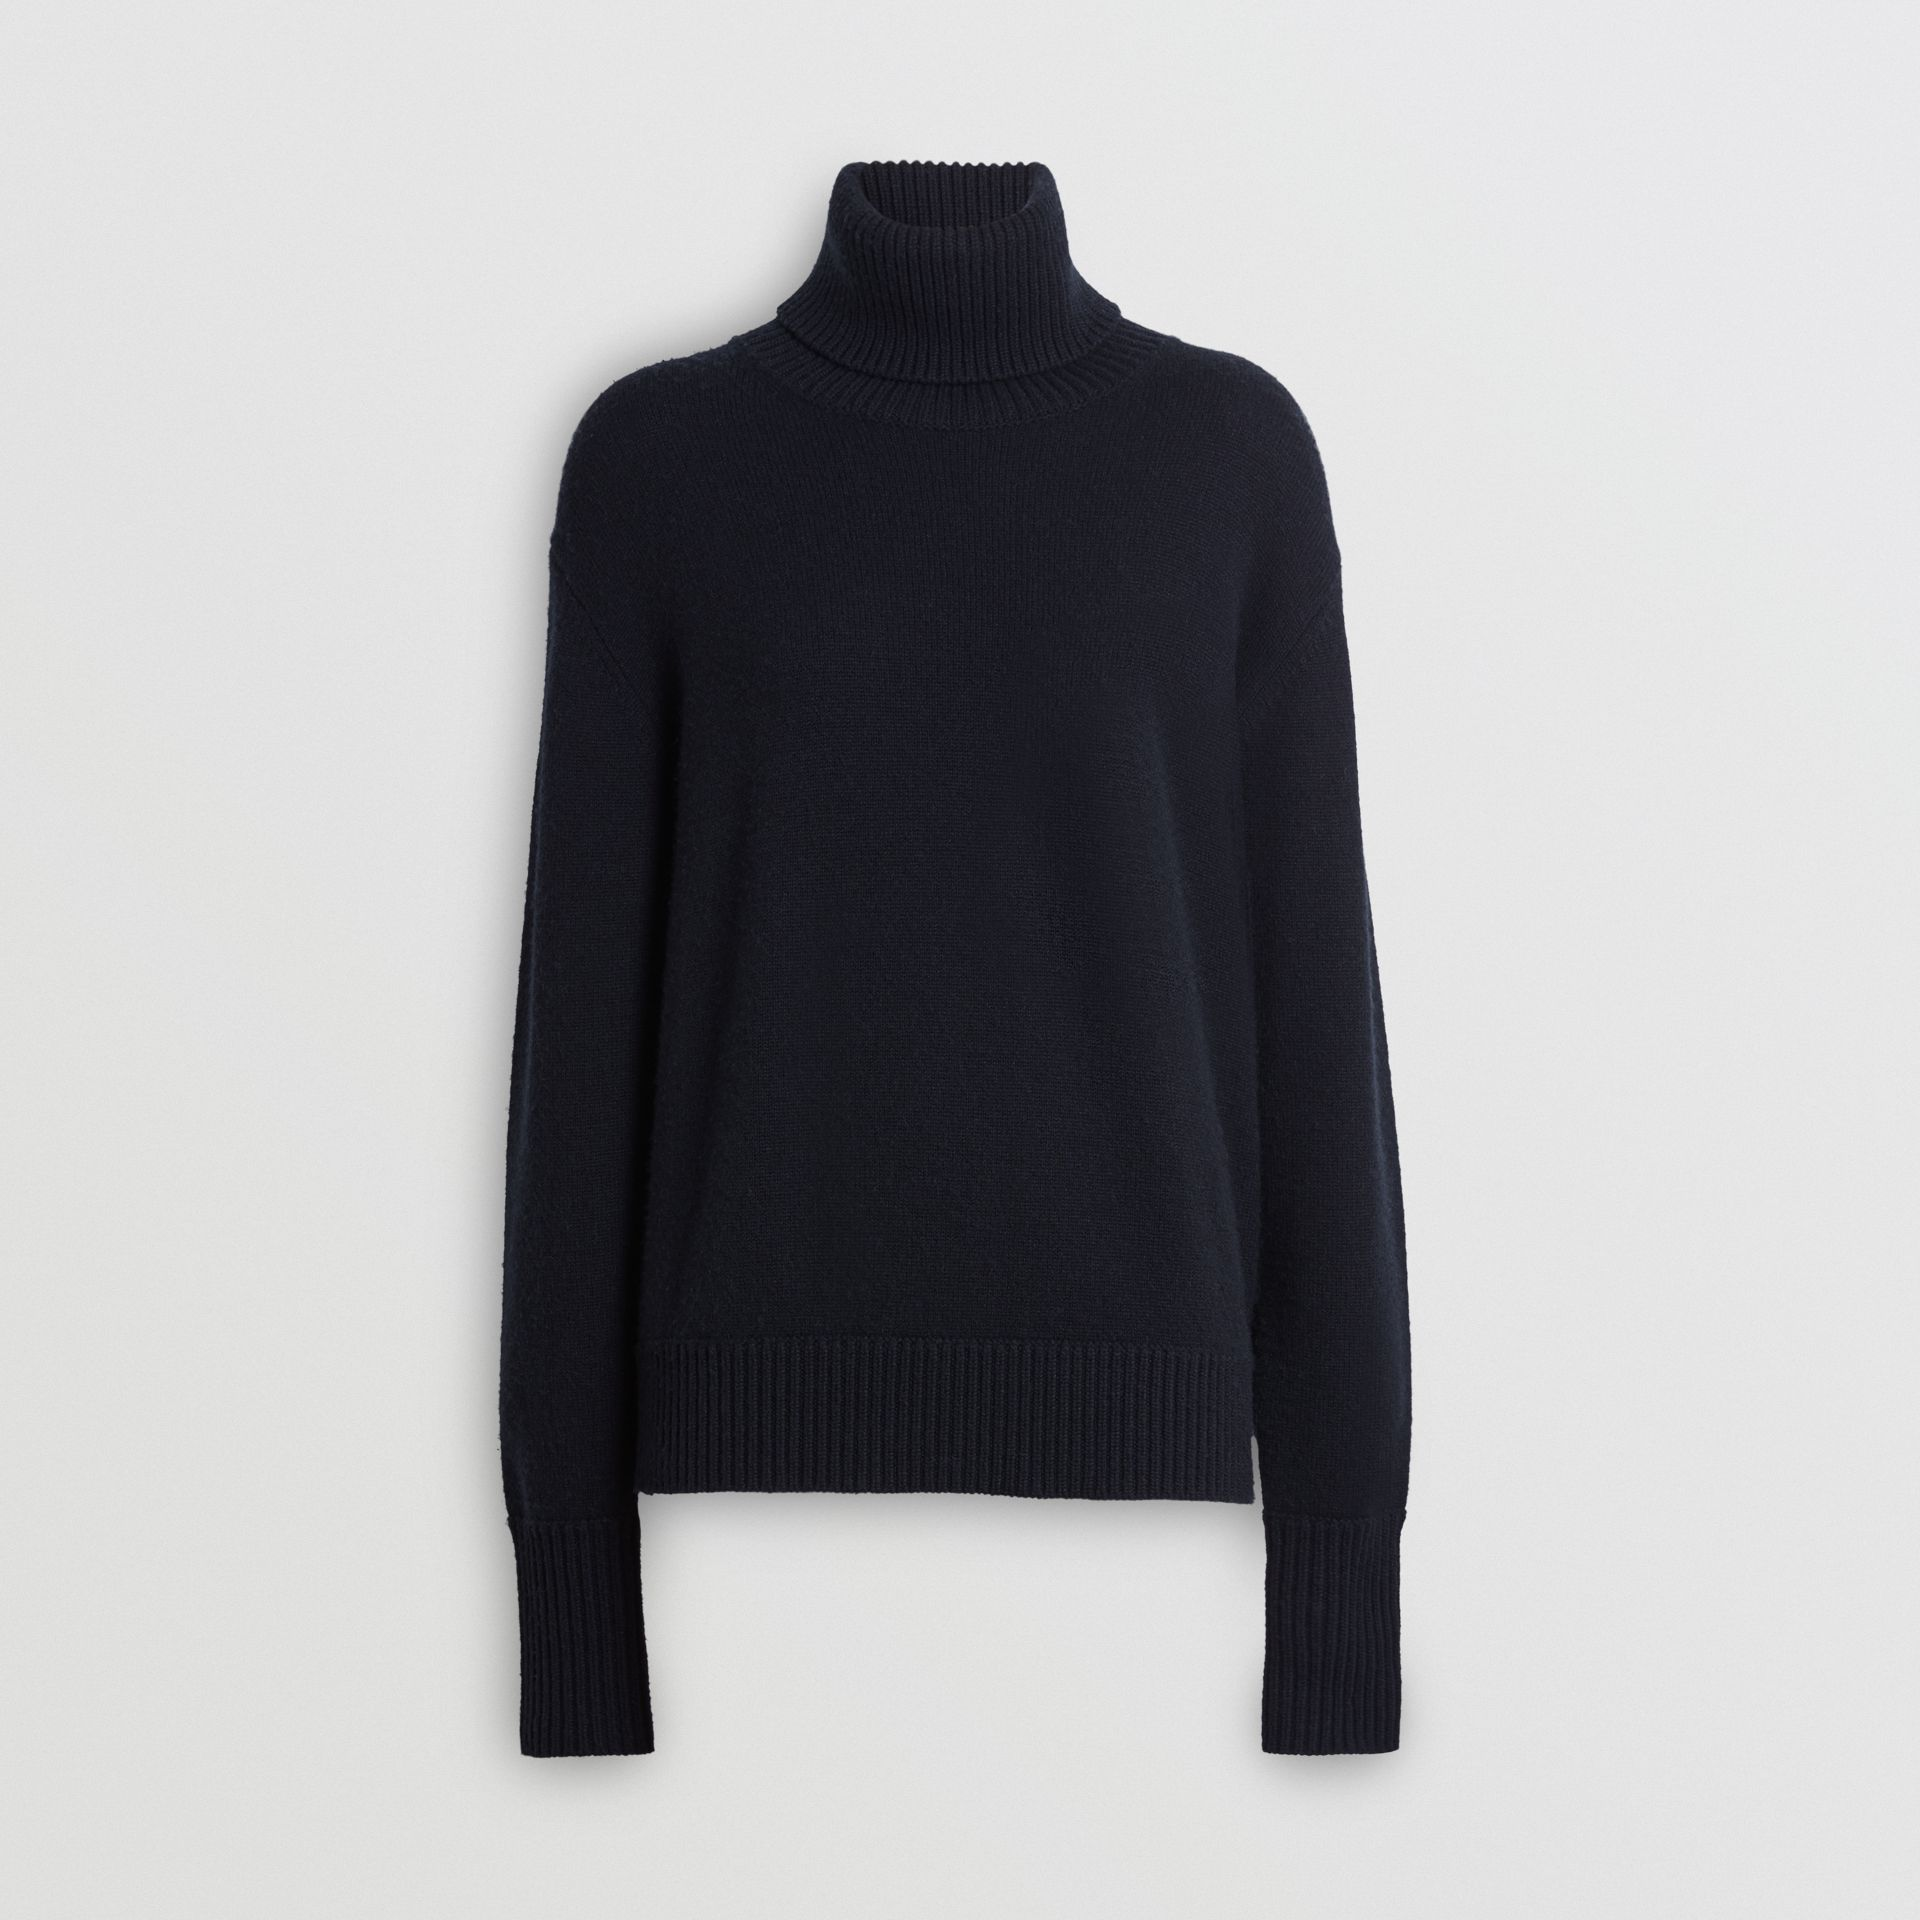 Embroidered Crest Cashmere Roll-neck Sweater in Navy - Women | Burberry Singapore - gallery image 3